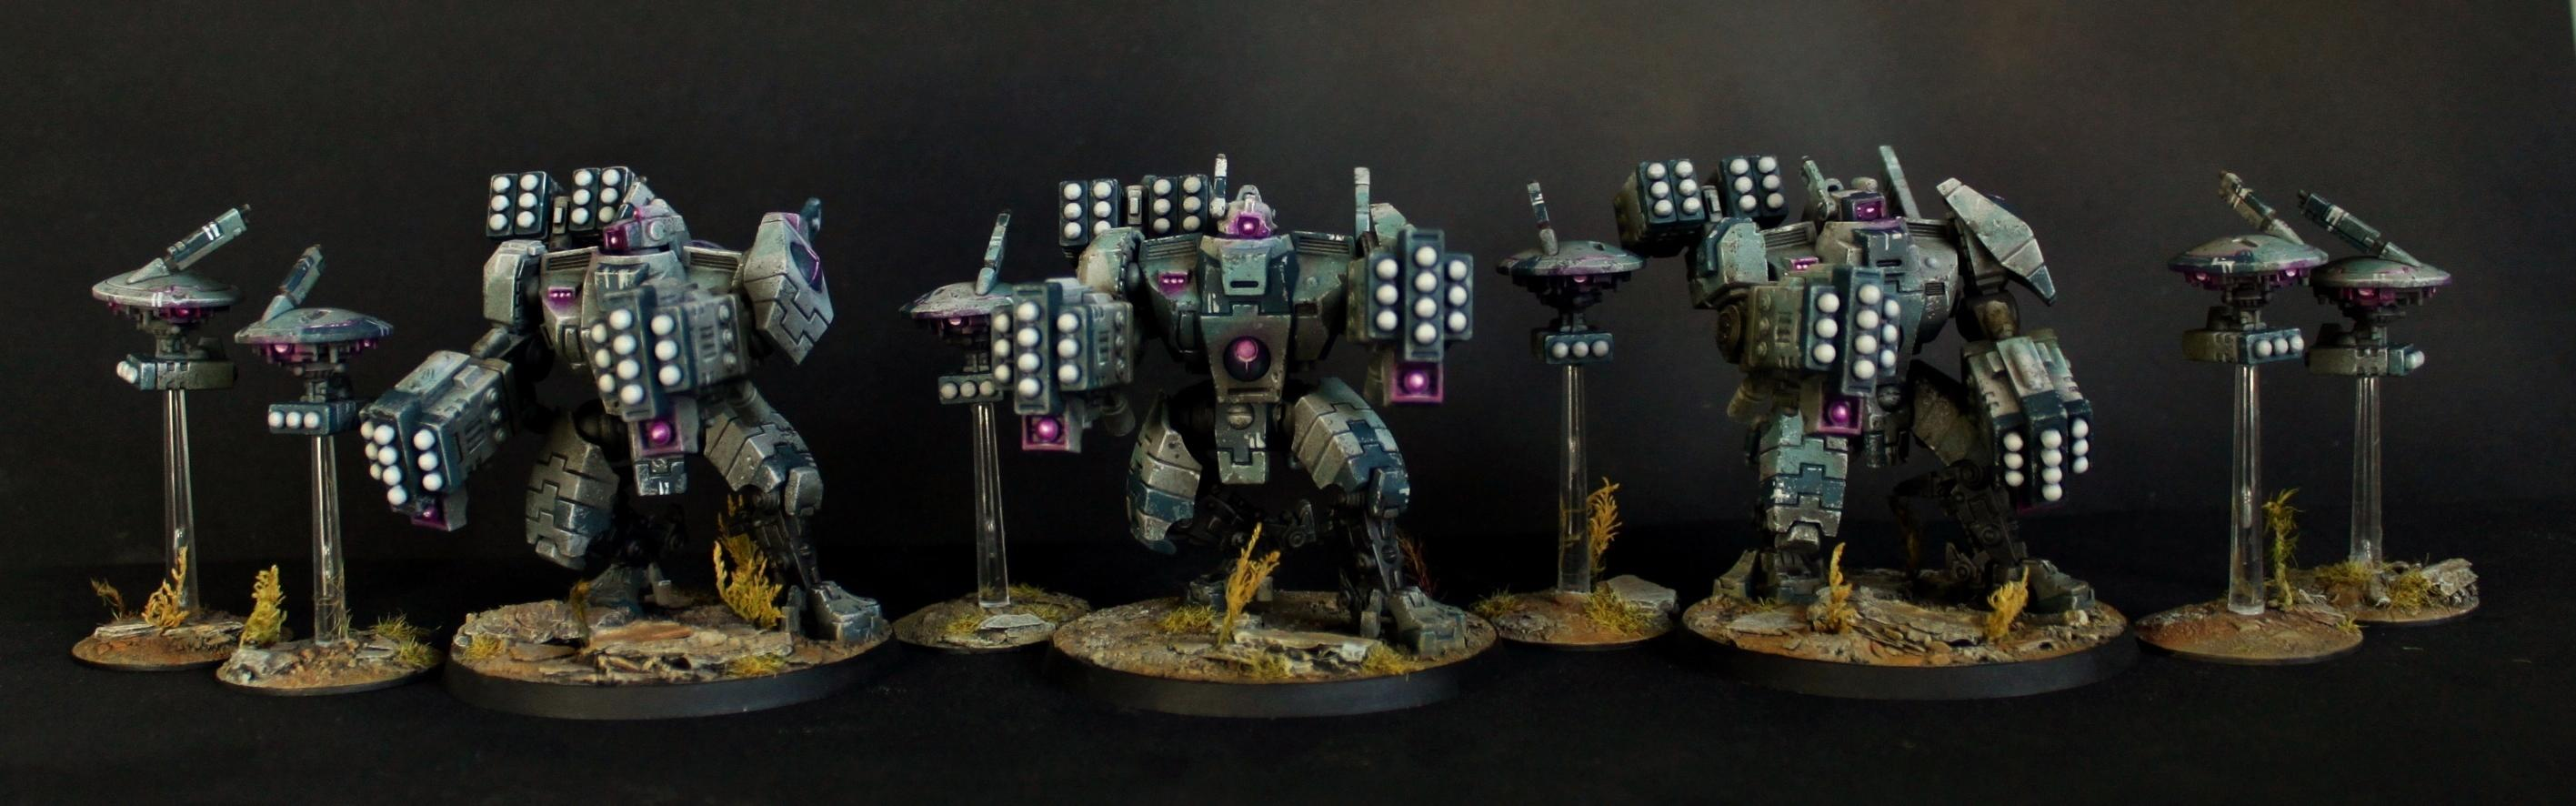 Broadsides, Drone, Object Source Lighting, Purple, Squad, Tau, Tau Broadside, Weathered